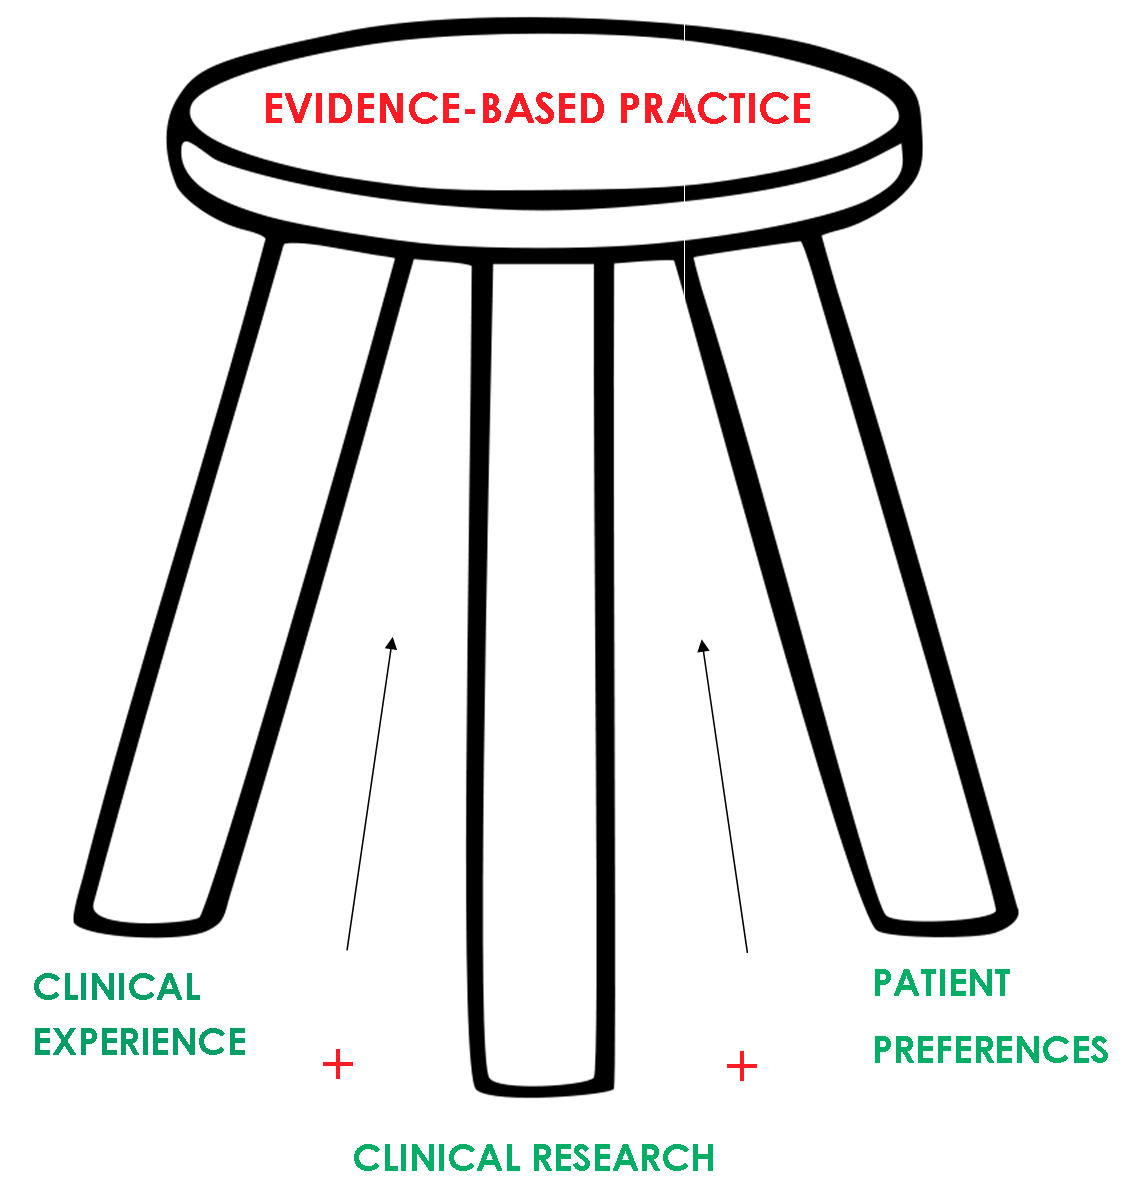 Image of the three-legged stool of evidence-based practice.